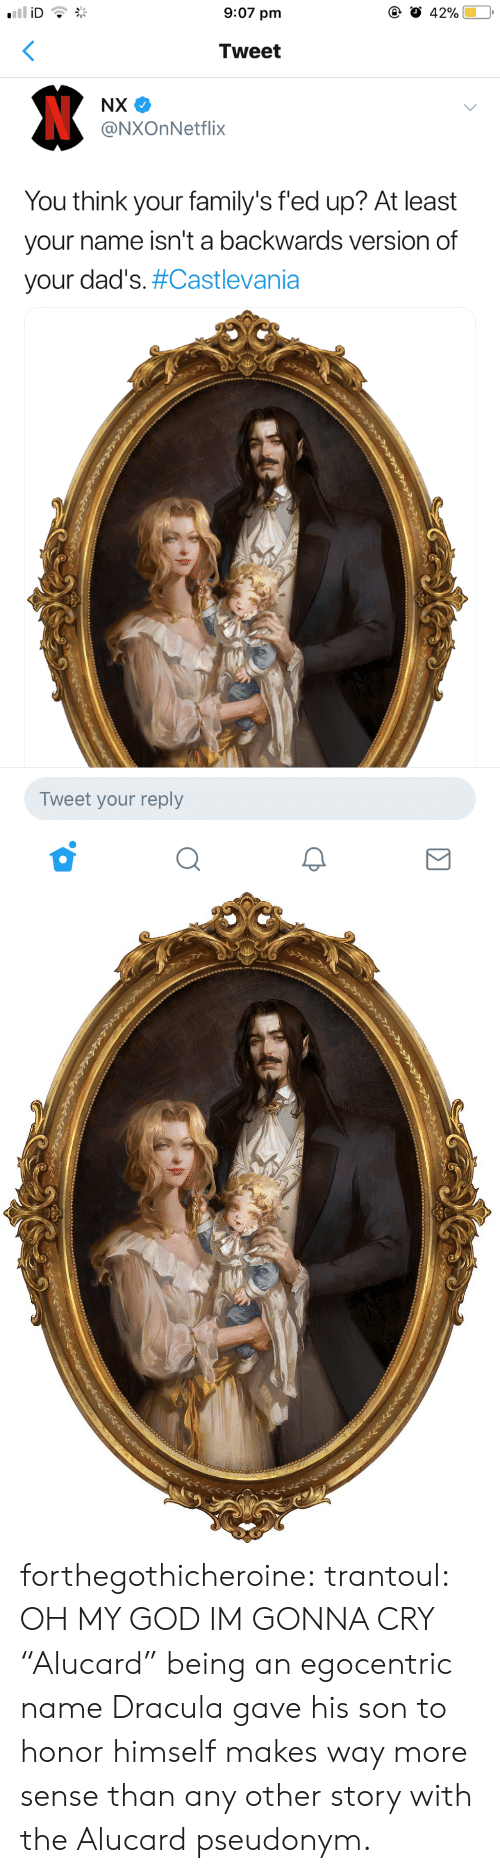 """castlevania: 9:07 pm  Tweet  @NXOnNetflix  You think your family's fed up? At least  your name isn't a backwards version of  your dad's#Castlevania  Tweet your reply forthegothicheroine:  trantoul: OH MY GOD IM GONNA CRY """"Alucard"""" being an egocentric name Dracula gave his son to honor himself makes way more sense than any other story with the Alucard pseudonym."""